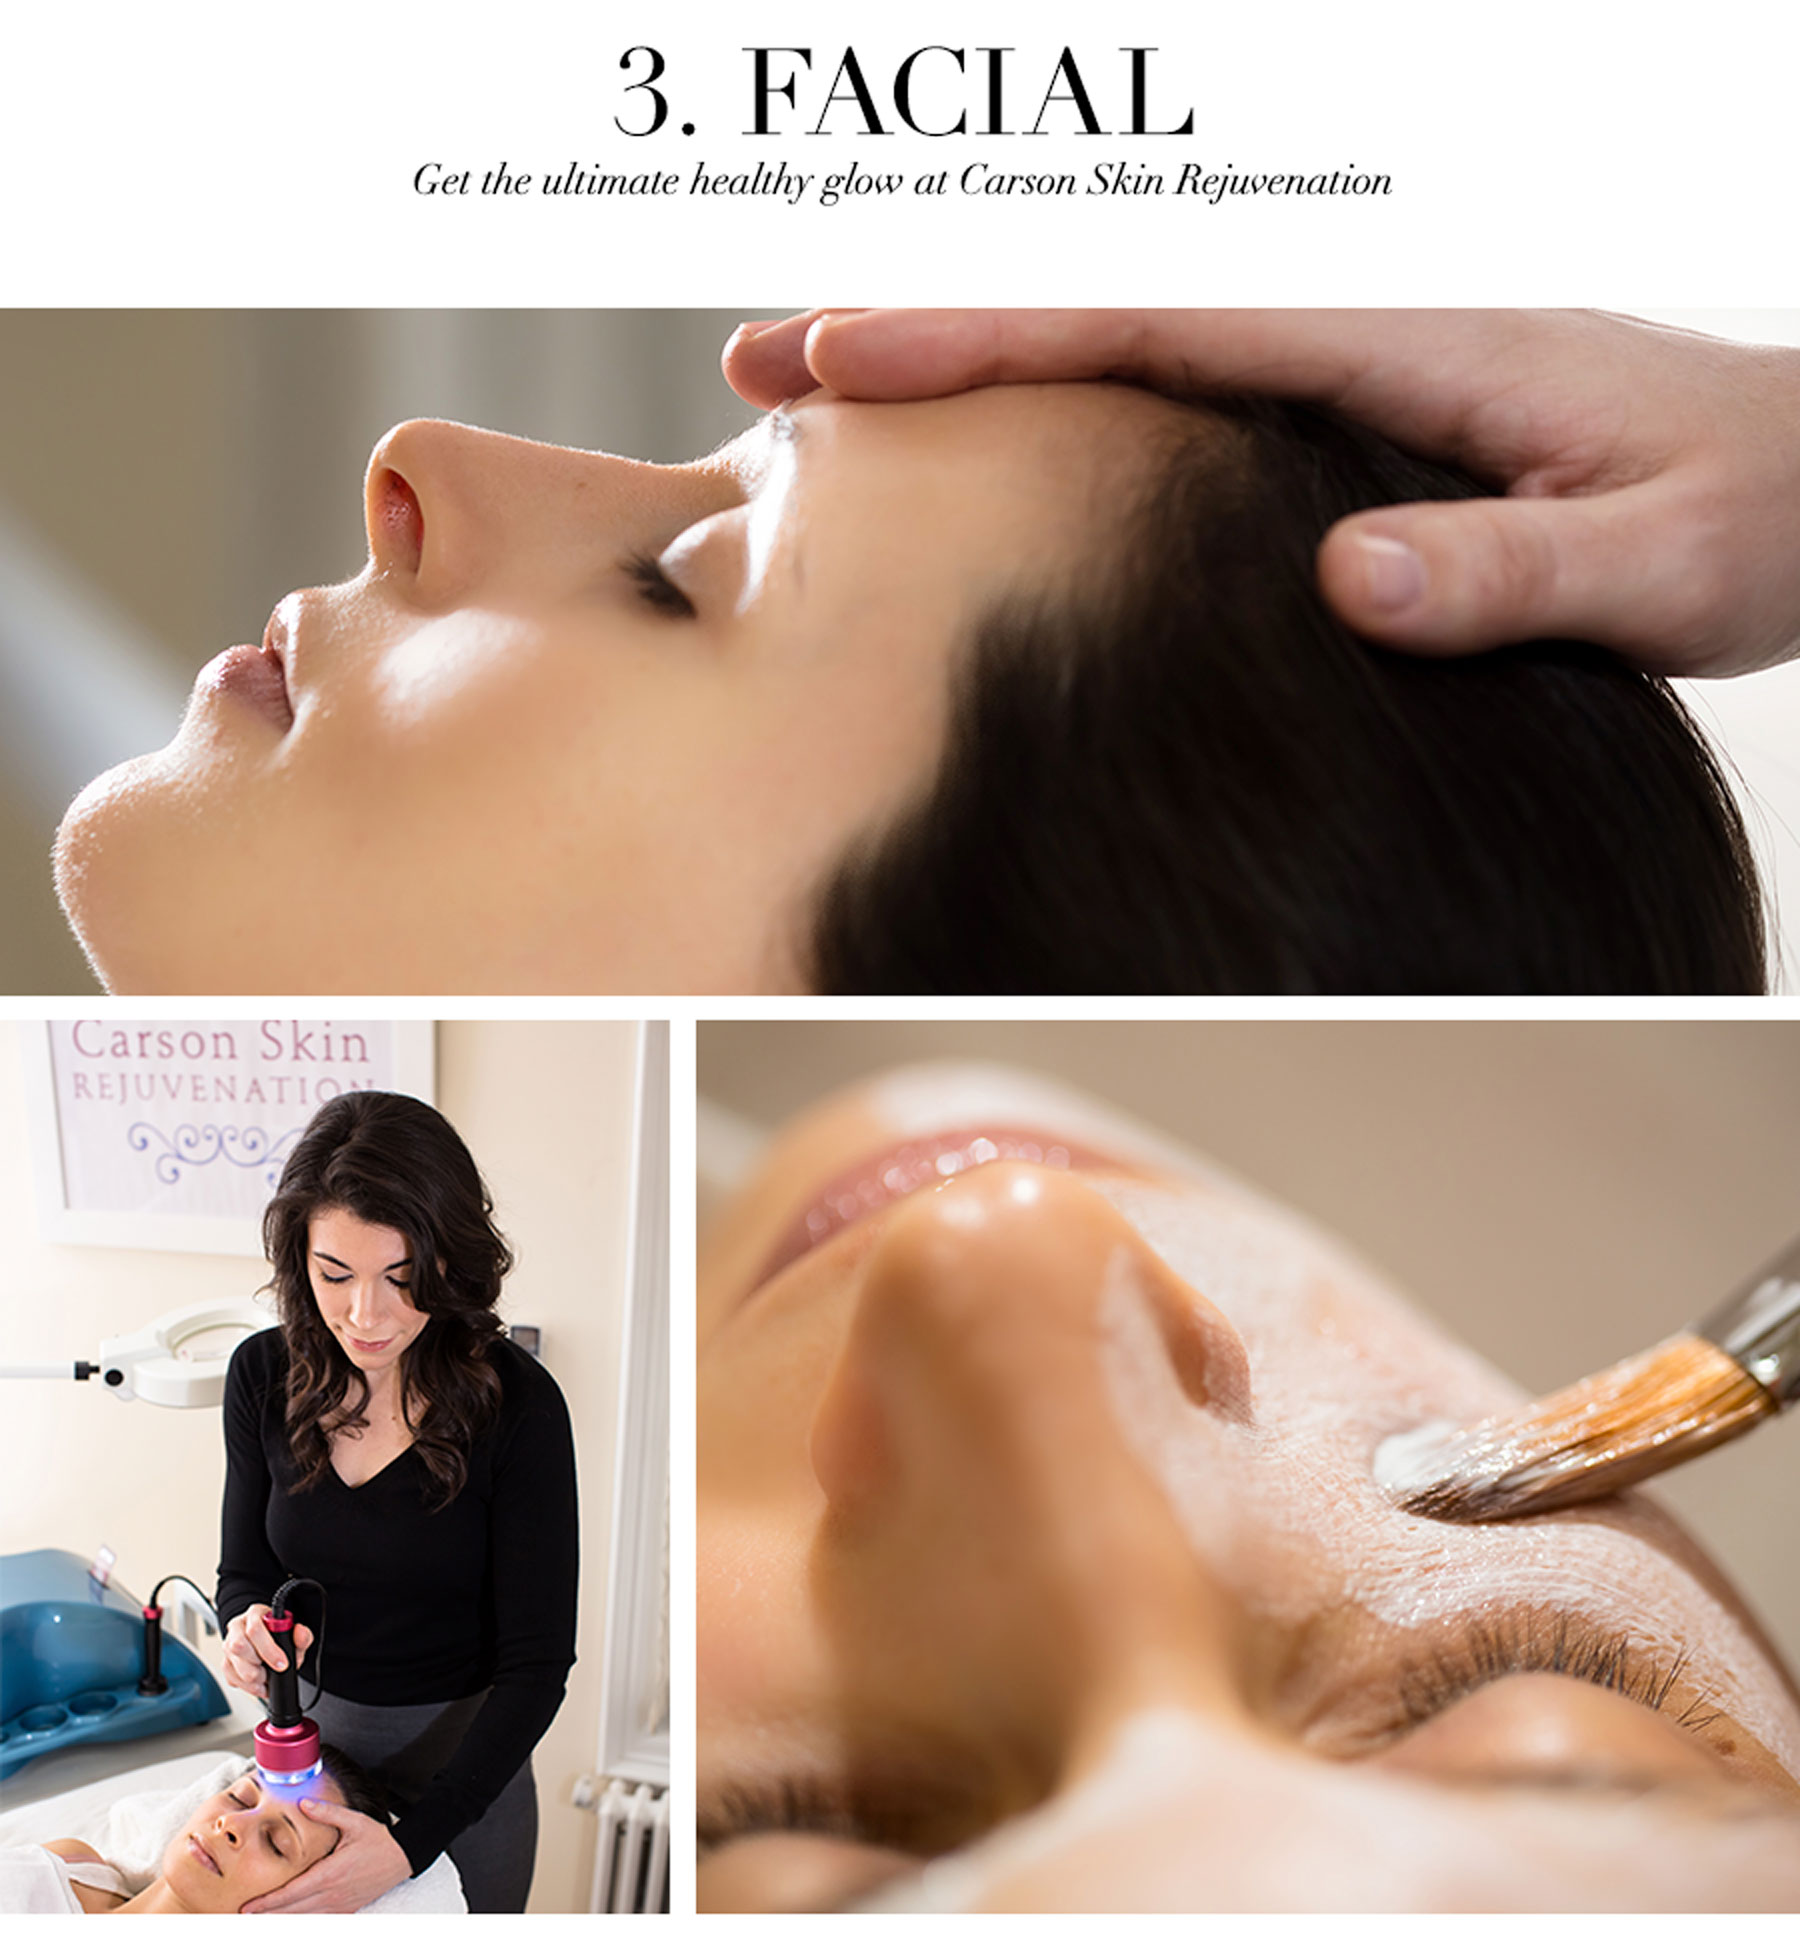 Ceci Johnson's Pamper-Yourself Picks - Facial - Get the ultimate healthy glow at Carson Skin Rejuvenation